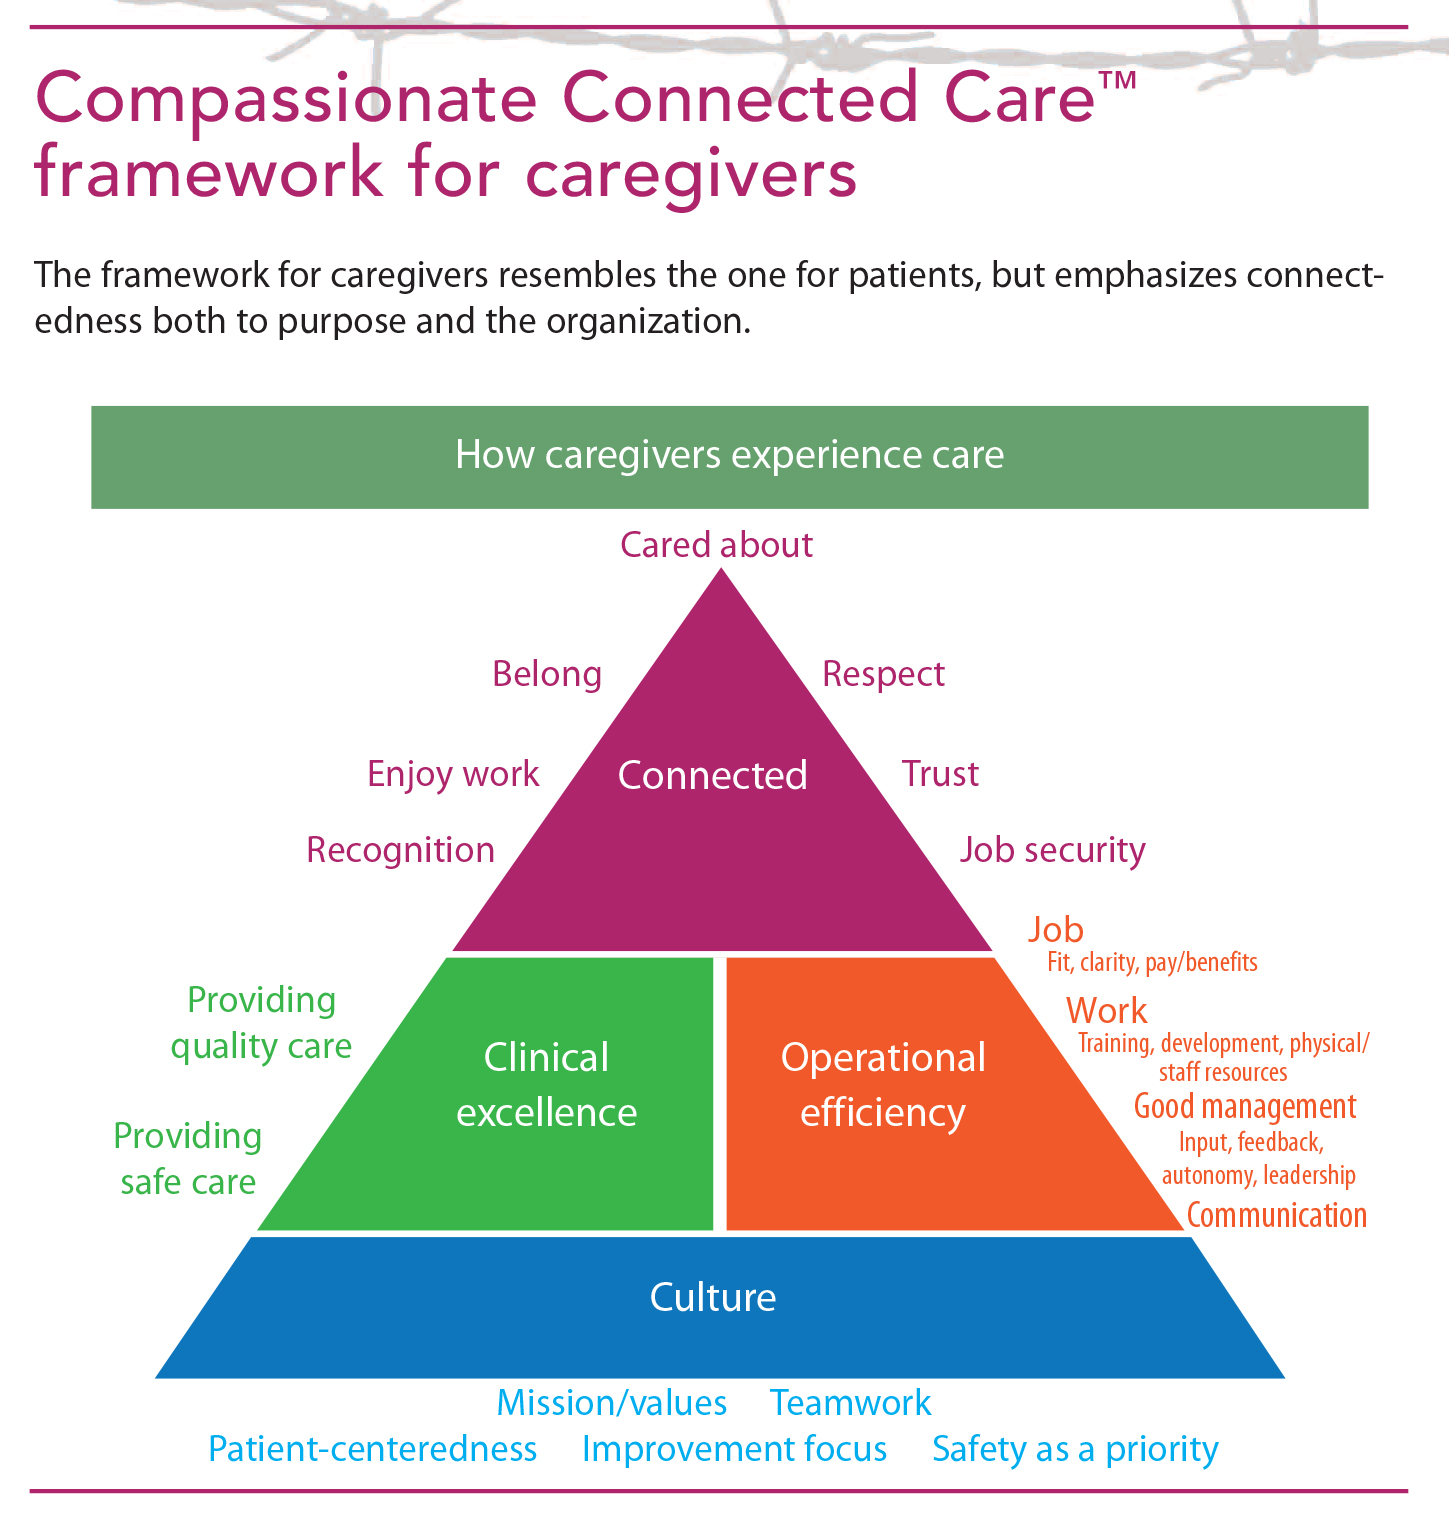 specifically measuring each of these components and comparing them to the average performance across all measures in the model provides a view of the data - Experience As A Caregiver